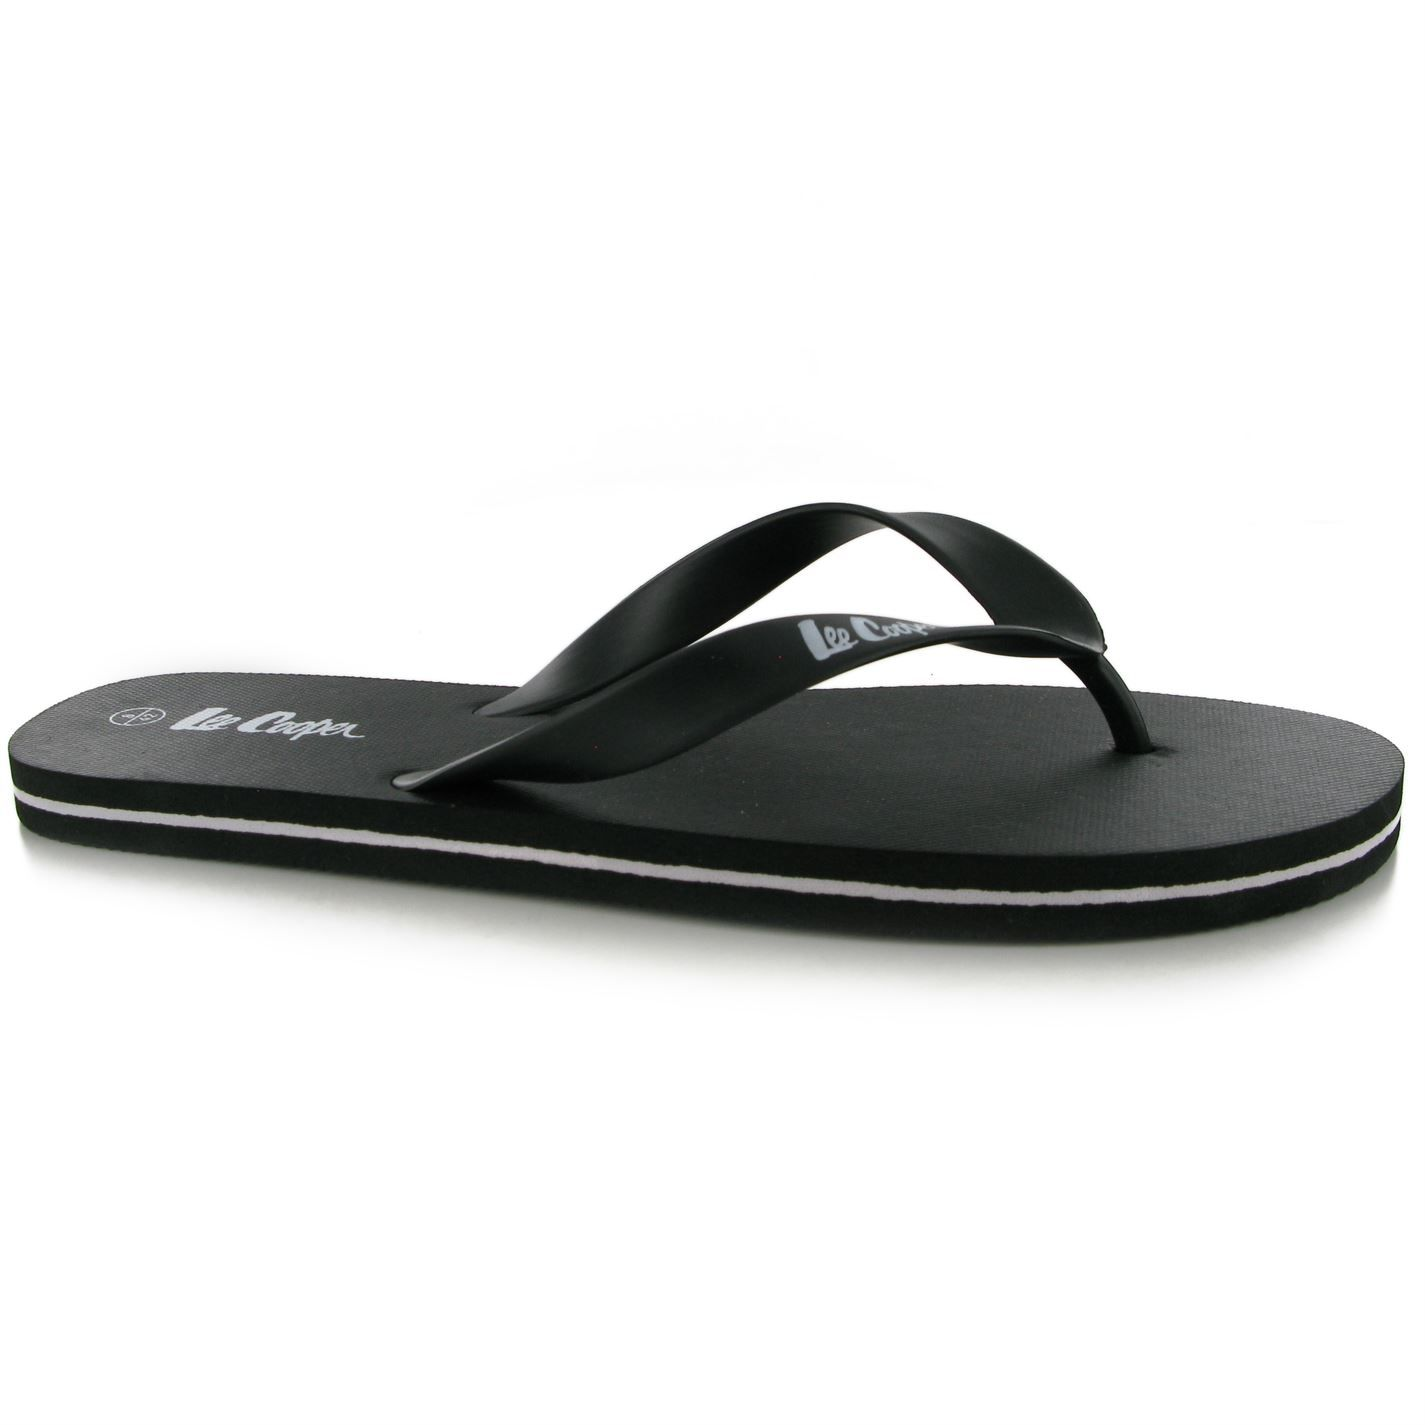 5fff811c43d2 Lee Cooper C Flip Flop Snr63 - Sports Direct Bulgaria